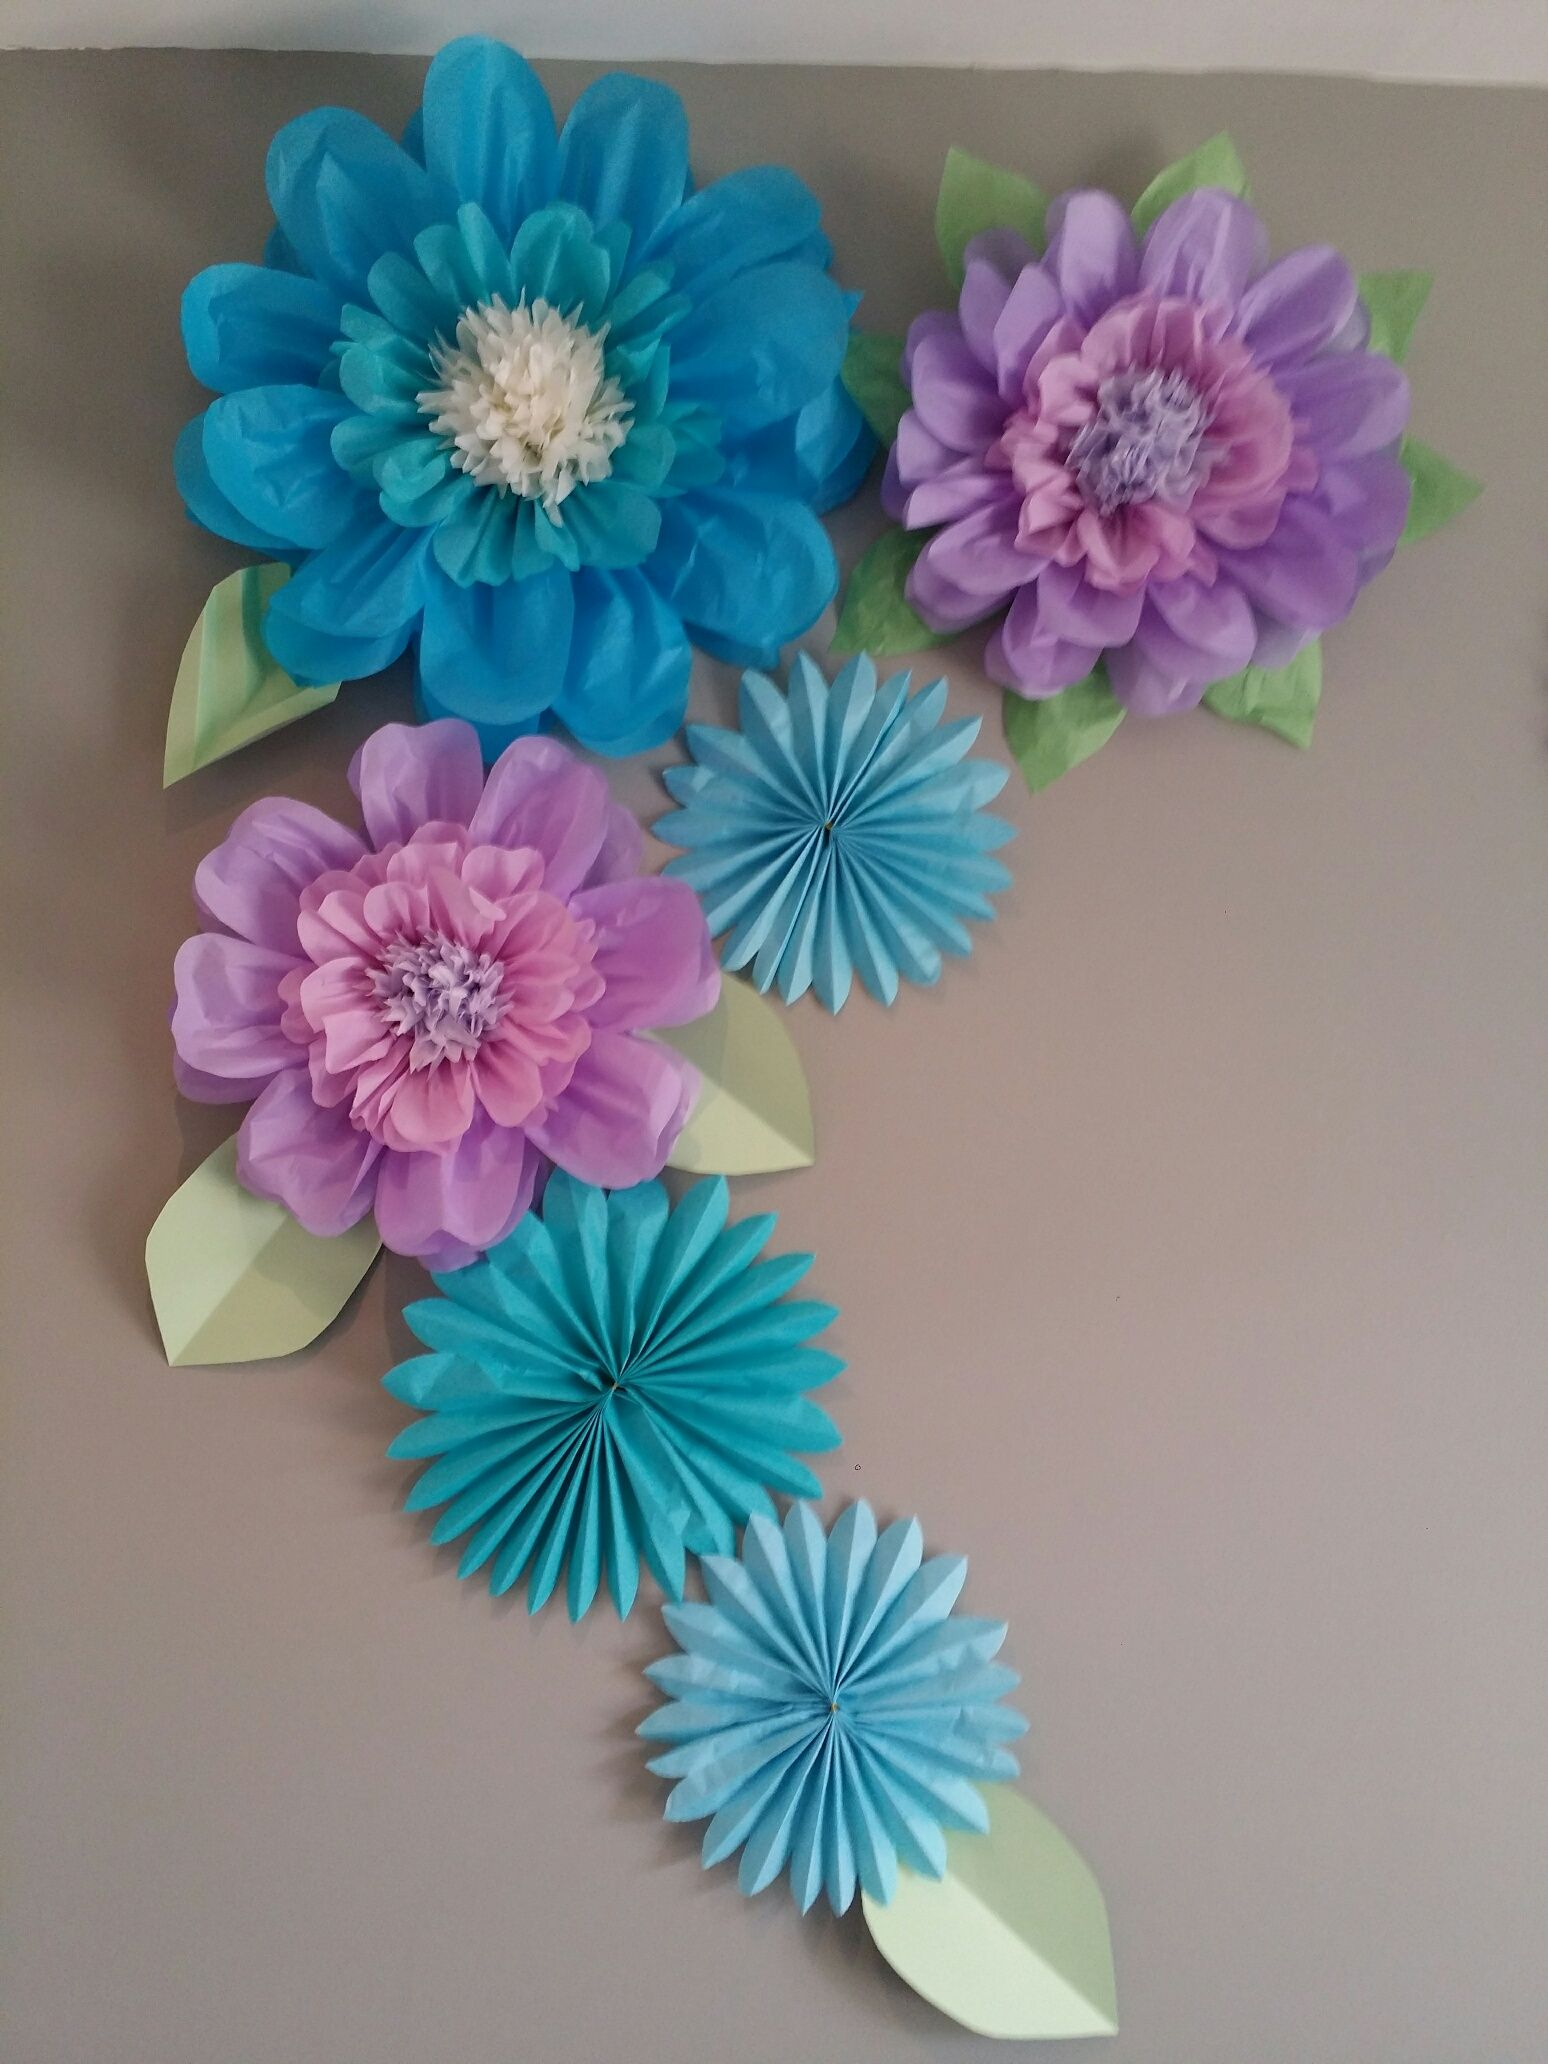 3 Feet By 25 Feet Paper Flowers And Pinwheels Backdrop Flores